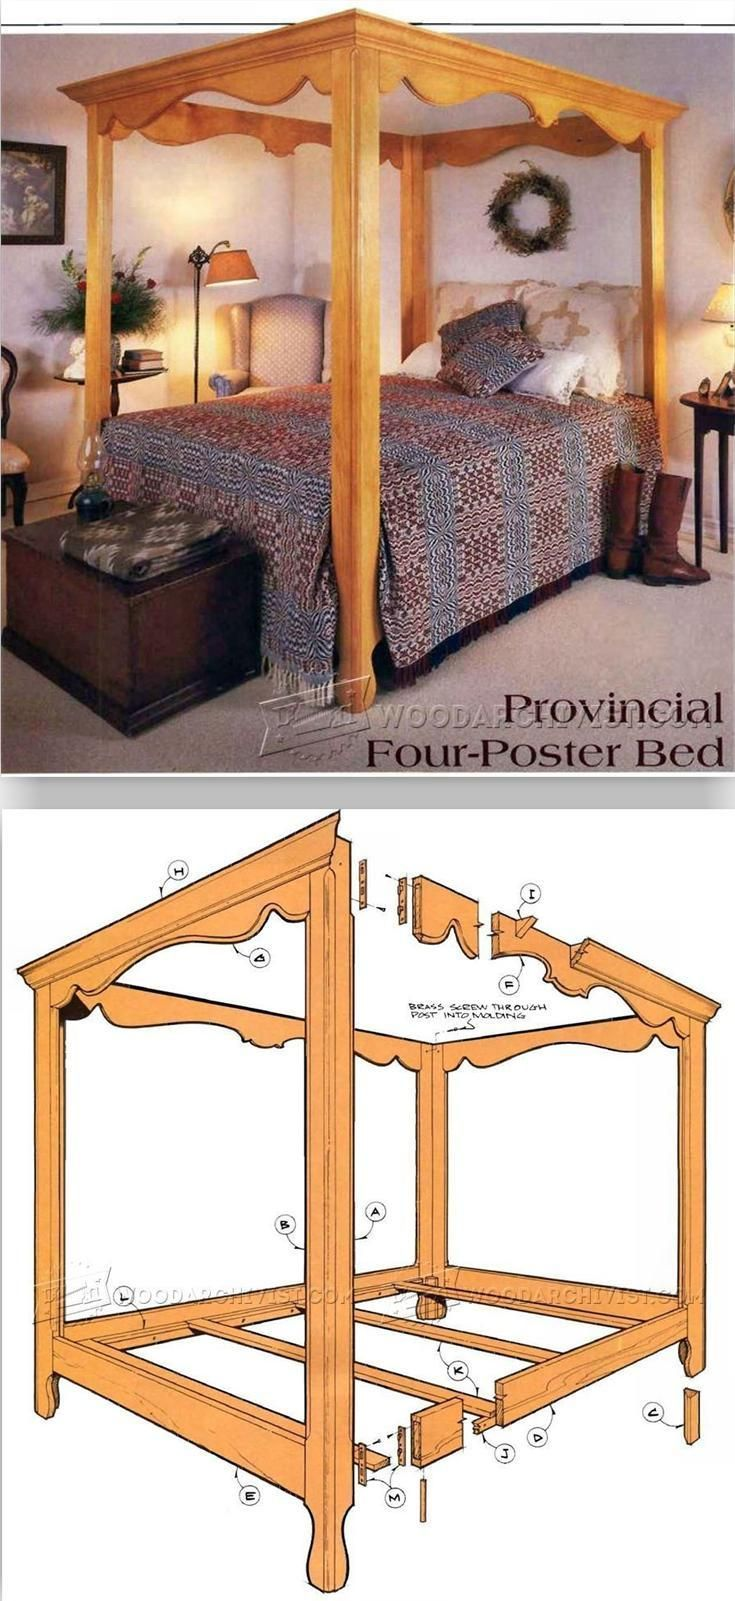 Four Poster Bed Plans - Furniture Plans and Projects | diy home ...